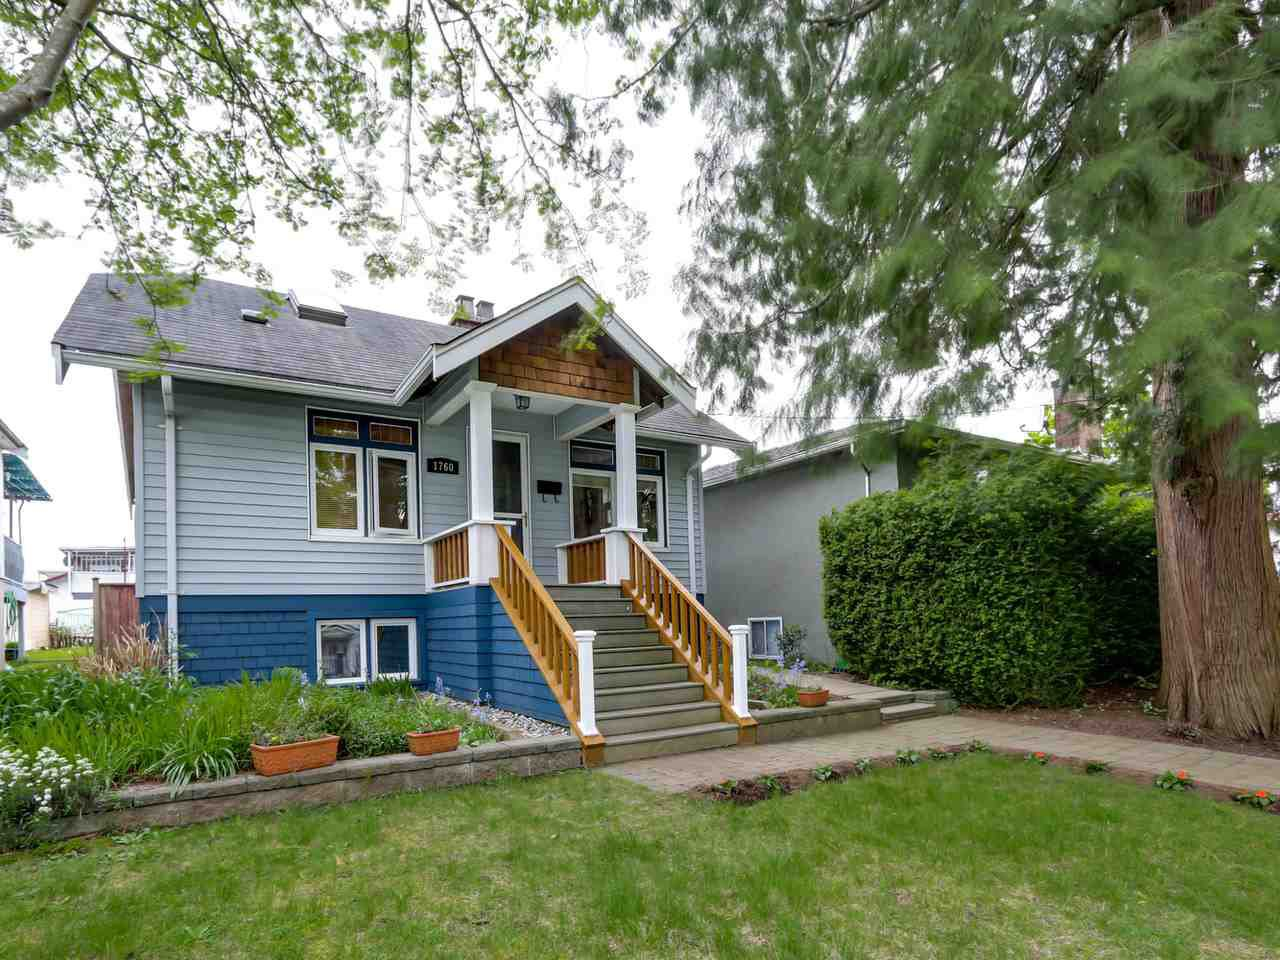 Photo 1: Photos: 1760 E 37TH AVENUE in Vancouver: Victoria VE House for sale (Vancouver East)  : MLS®# R2059026